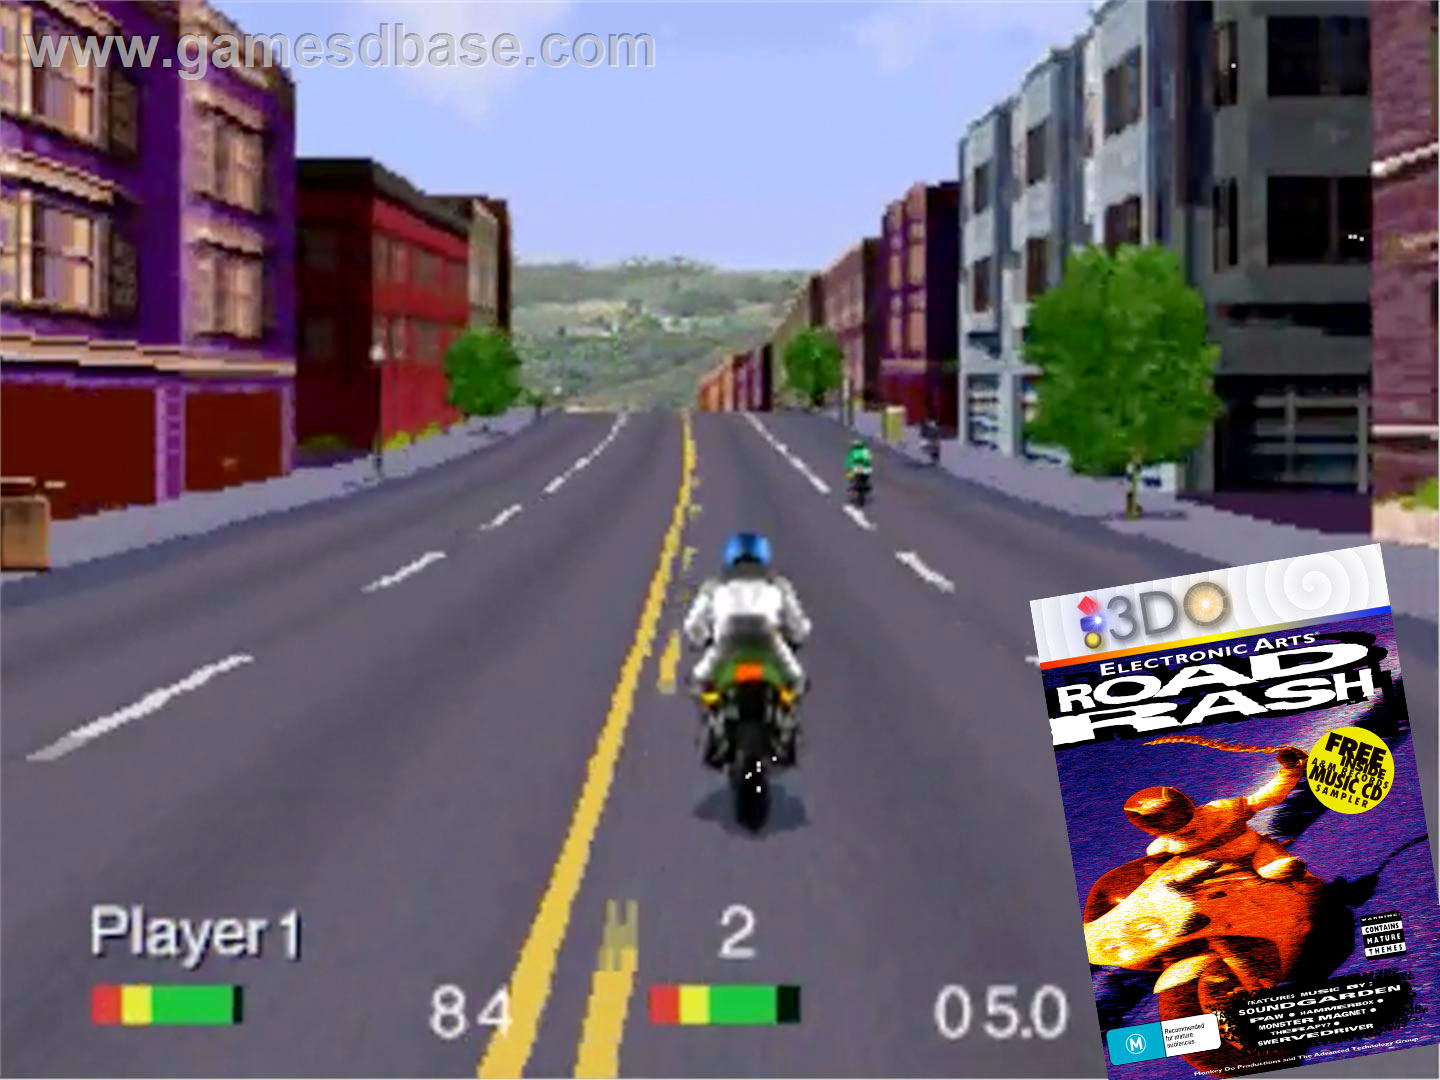 Real3DOPlayer app, #3DO emulator is available for Android